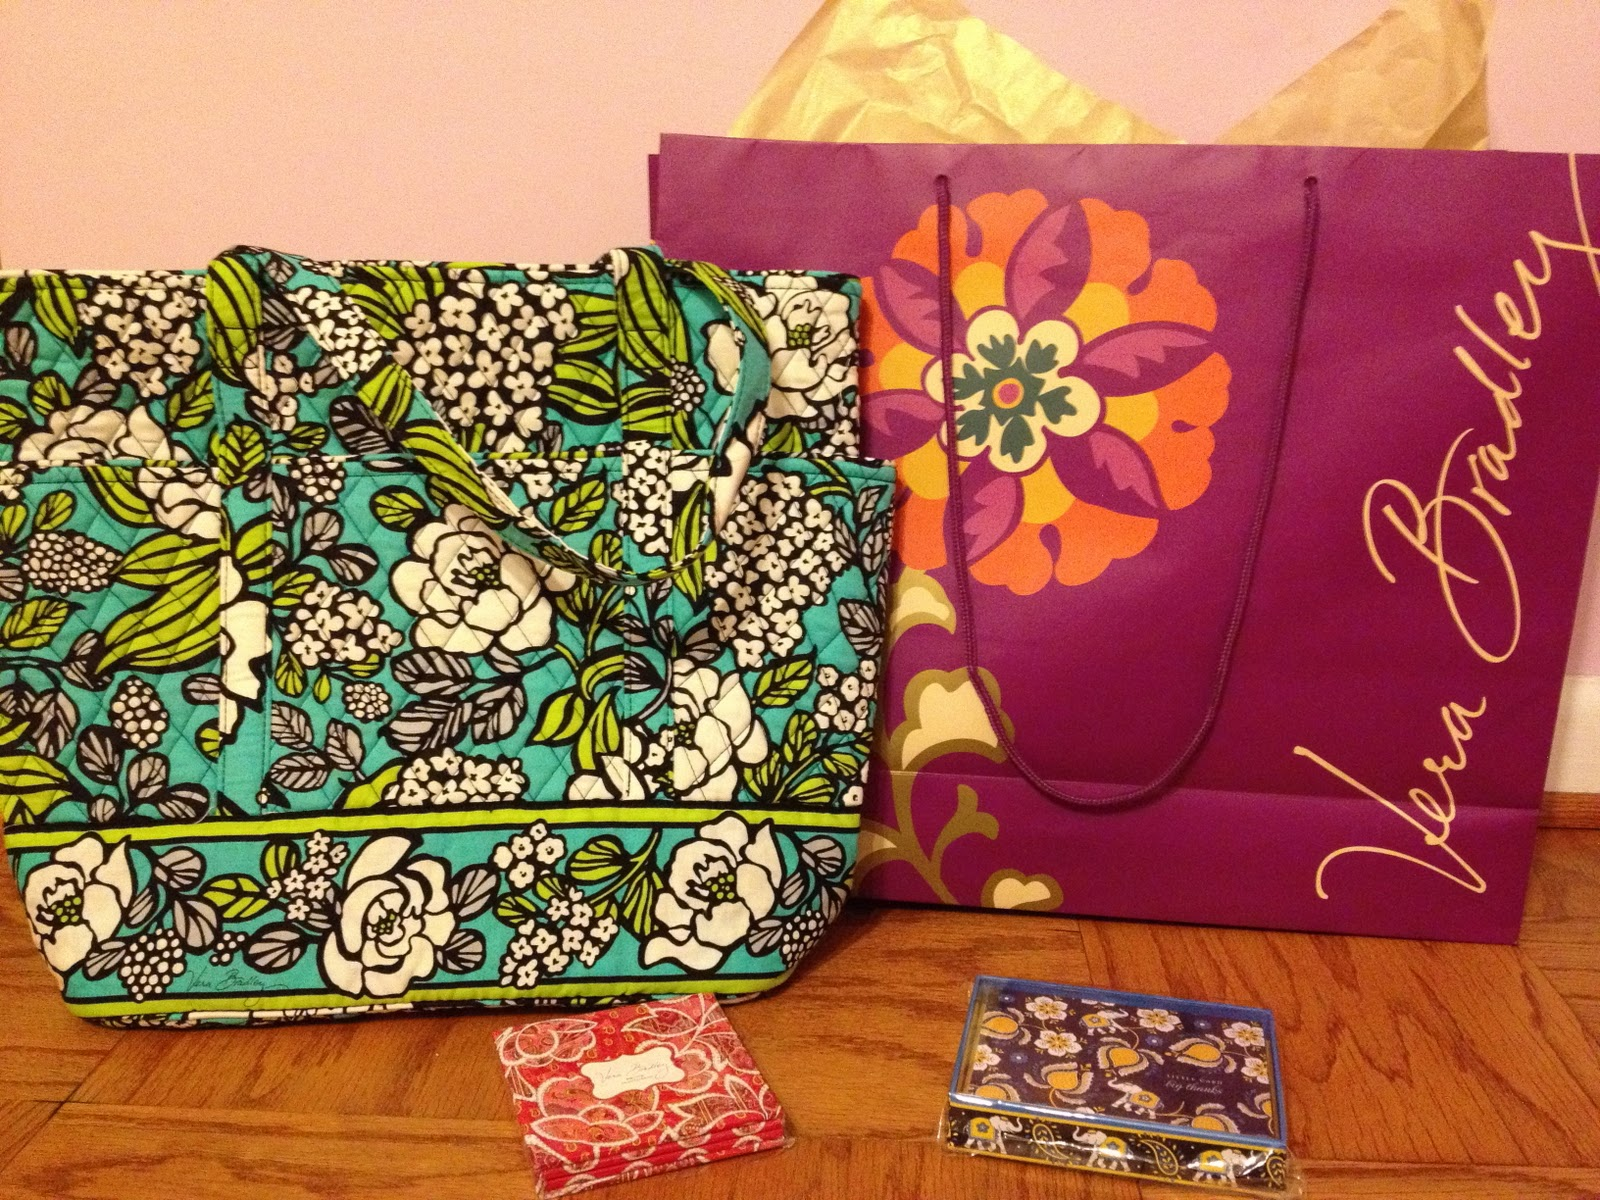 e5a0c867c7 As I mentioned yesterday I made it to the Vera Bradley store last week to go  check out the new colors for Spring 2012. I picked up a few things while I  was ...